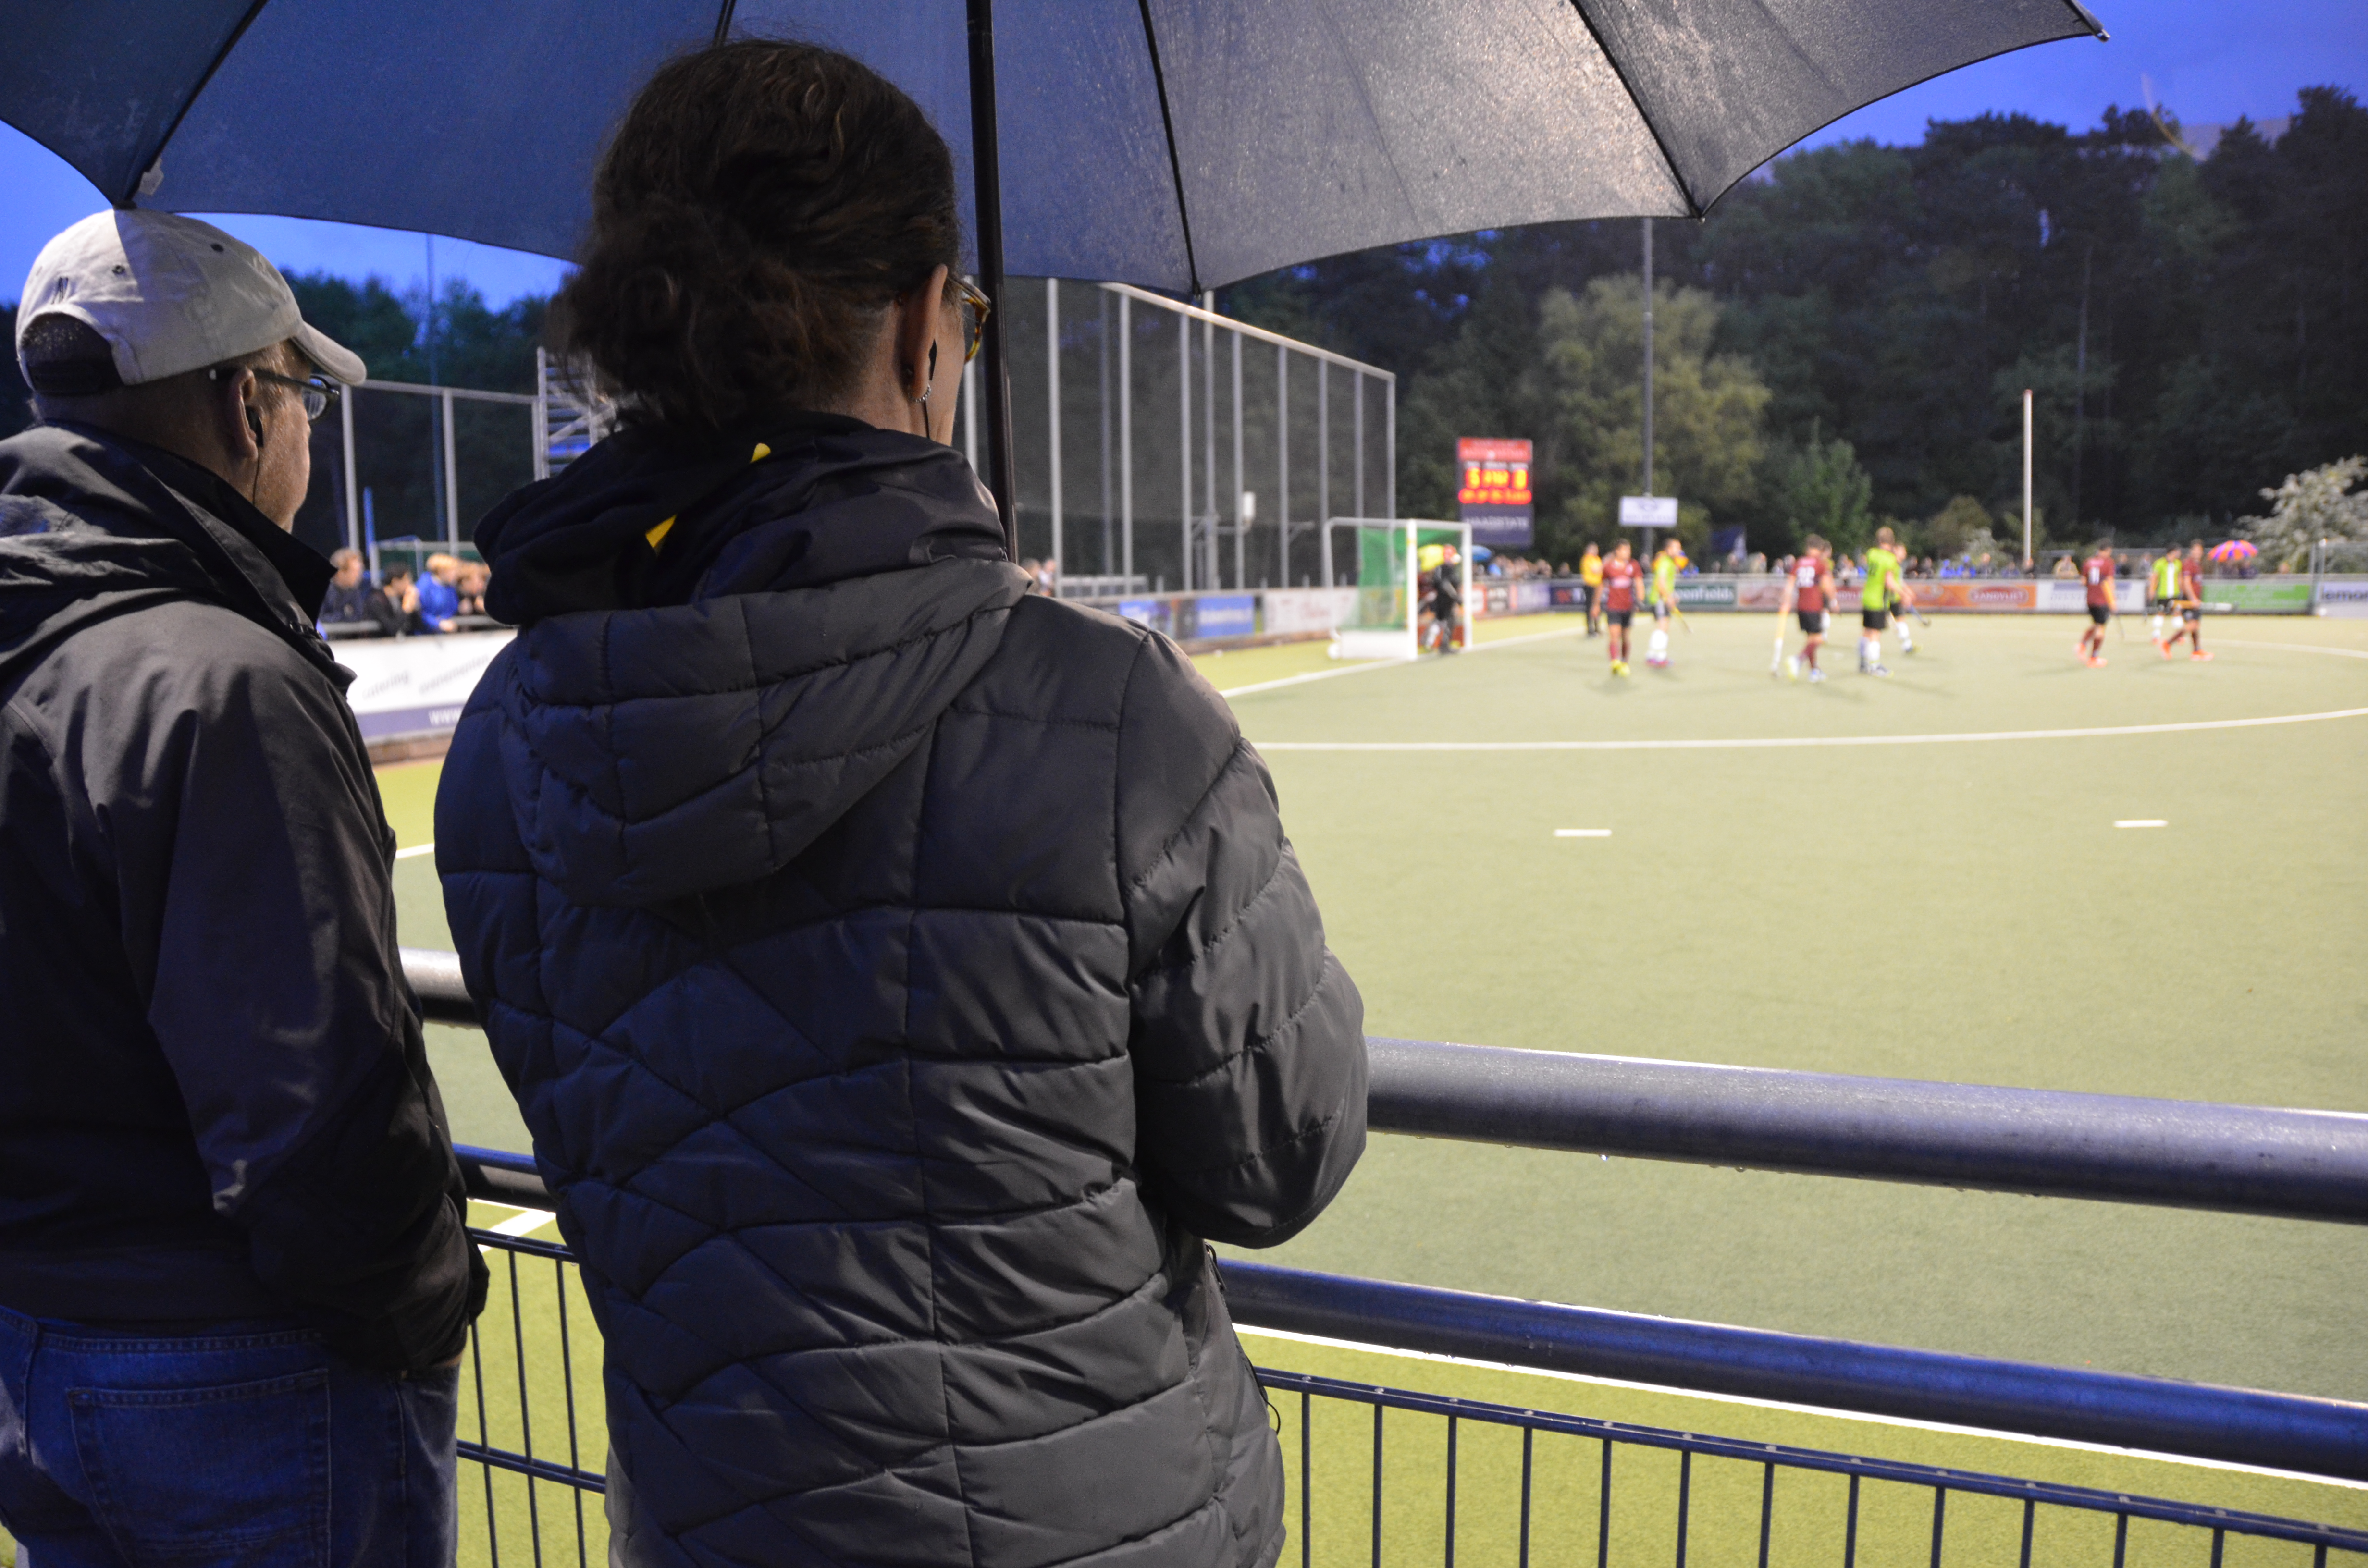 fieldhockey-umpires-and-accessors-using-axiwi-during-royal-dutch-hockey-federation-seminar-field